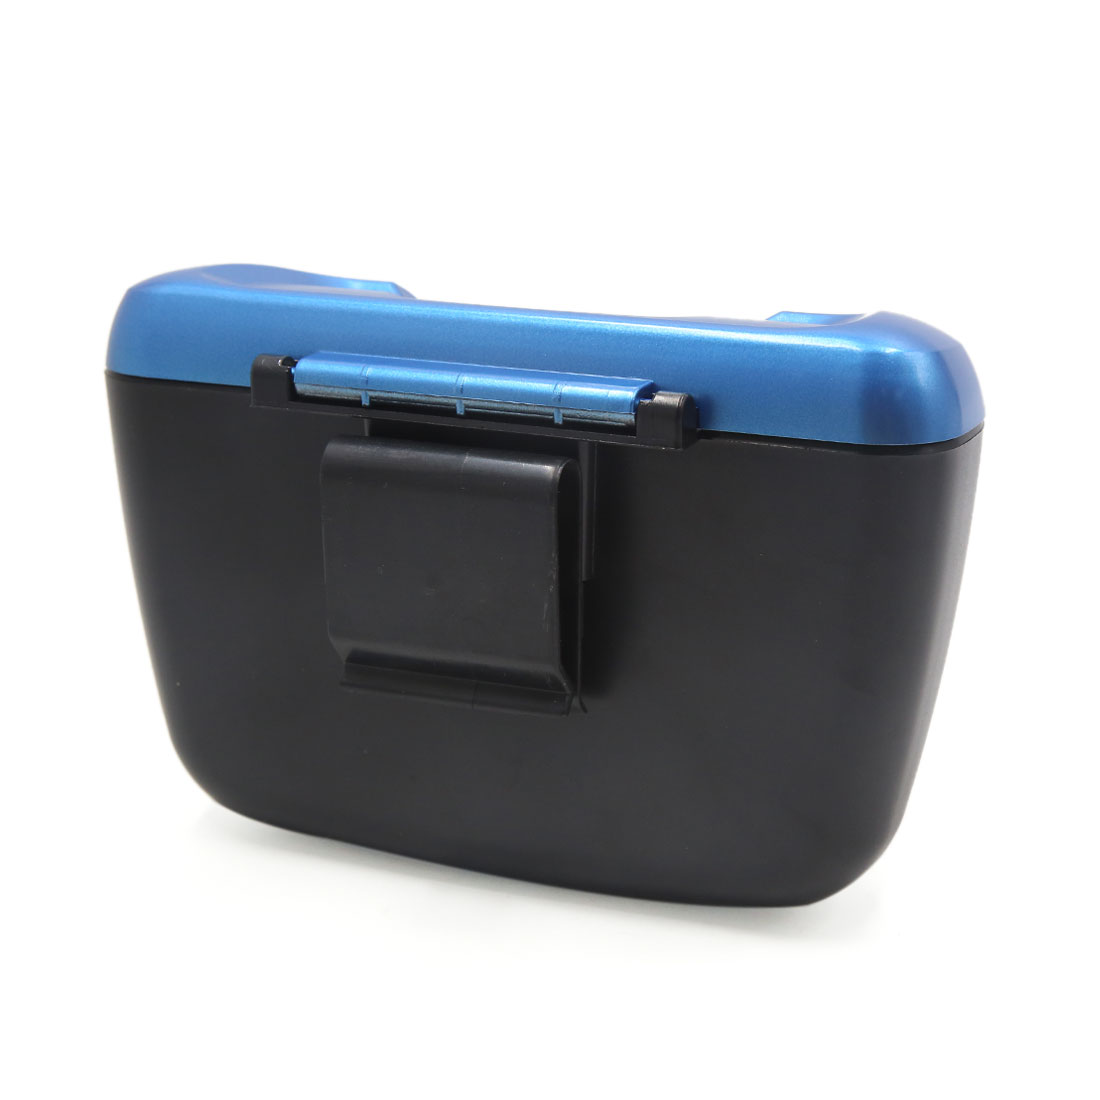 Vehicle Car Blue Trash Bin Rubbish Can Garbage Dust Case Holder Box - image 2 of 3